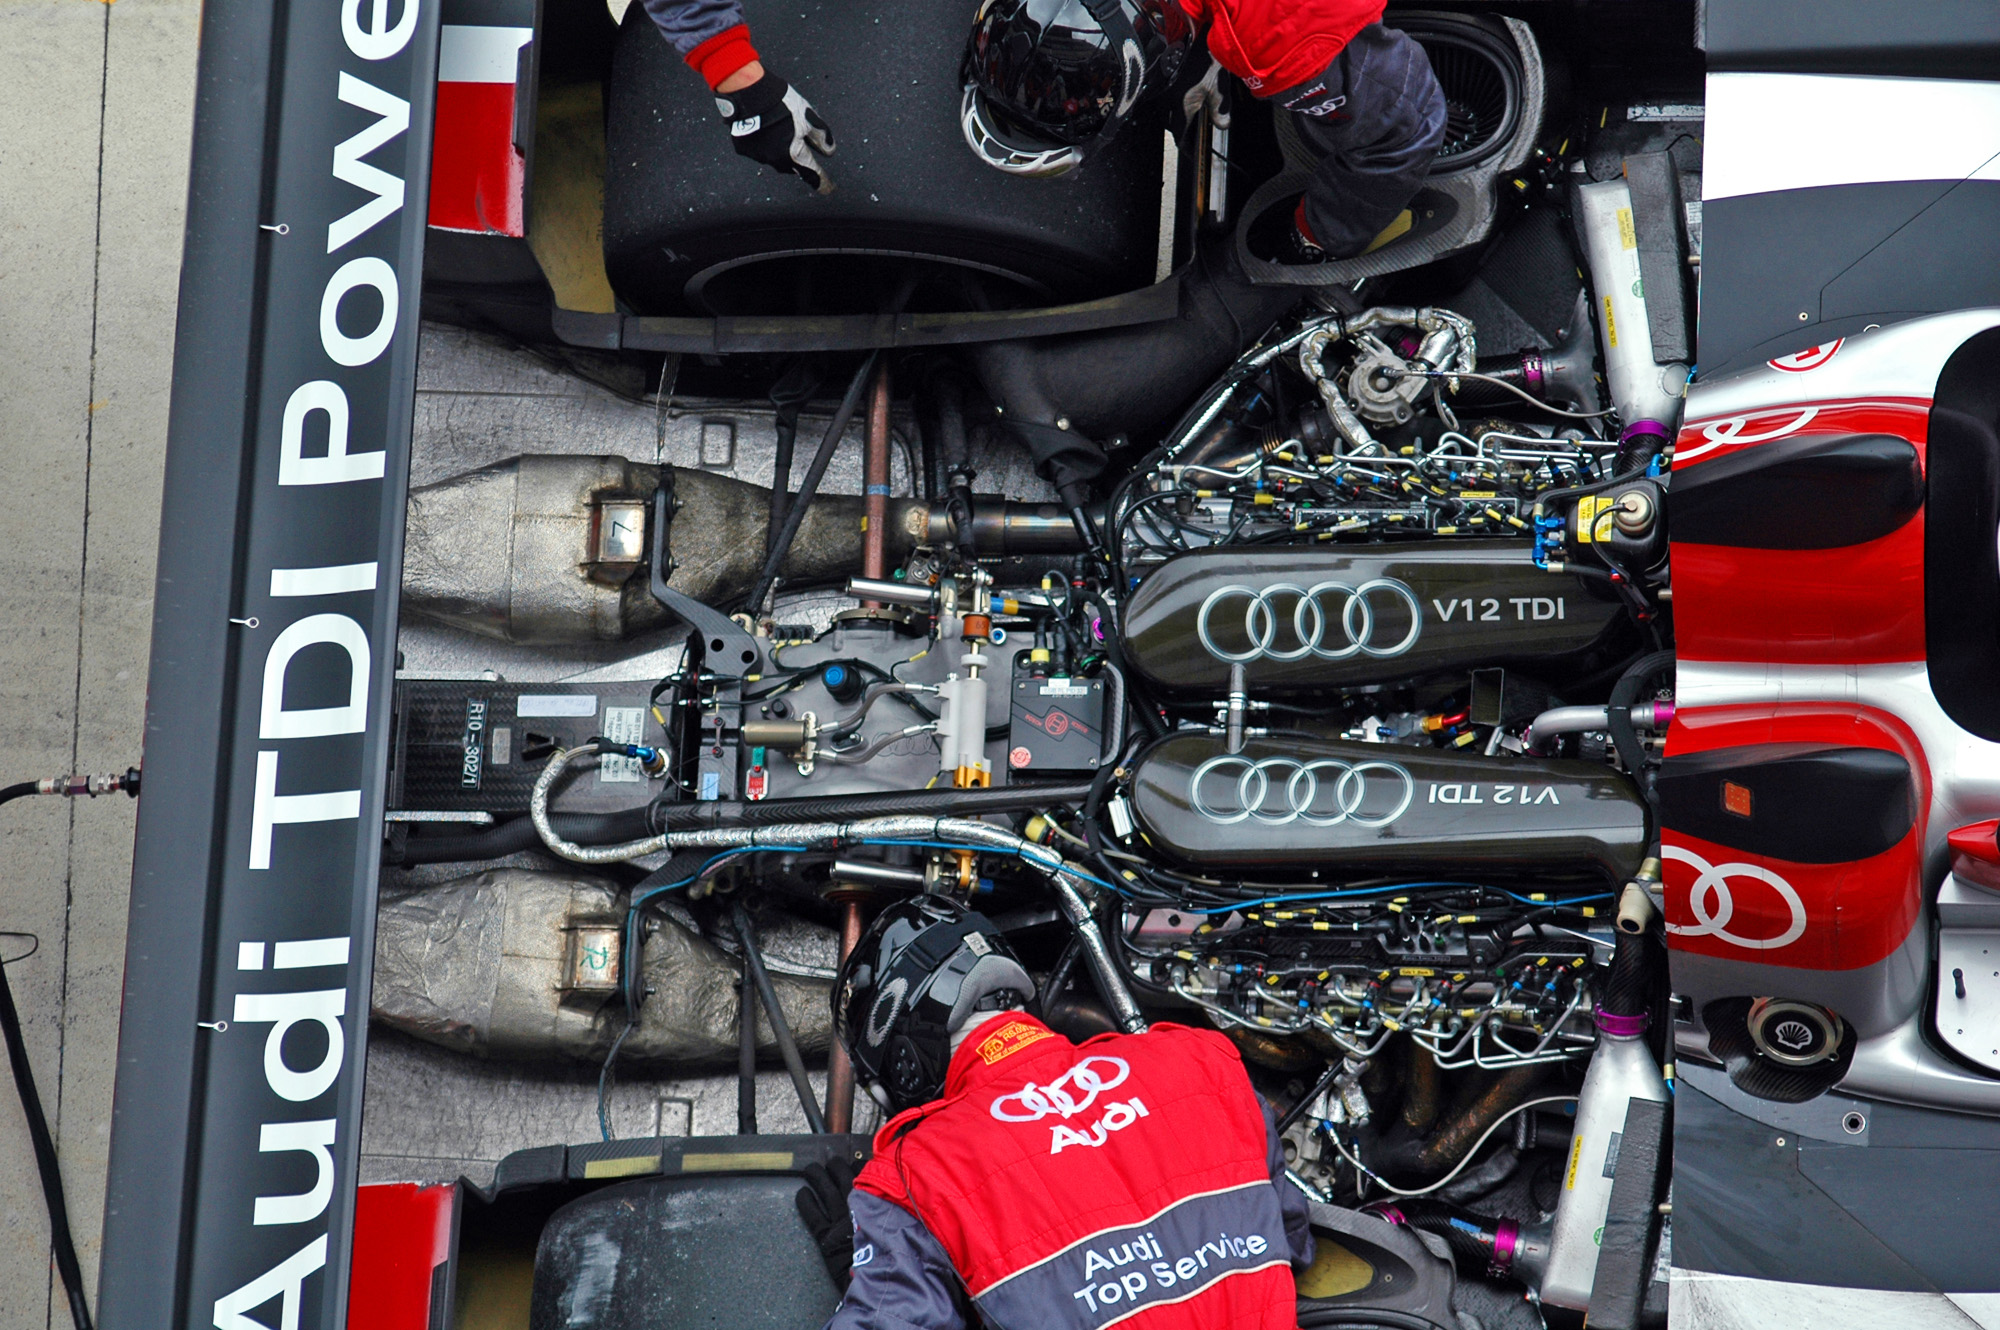 Closeup on the #3 Audi R10's engine | Flickr - Photo Sharing!